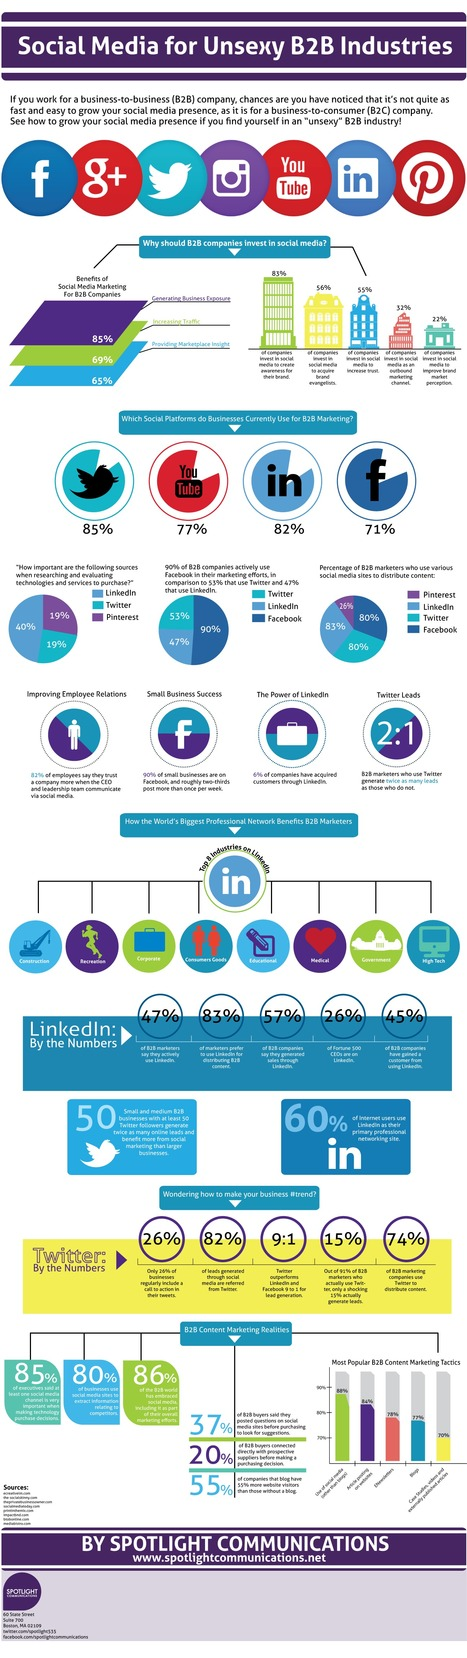 The Best Social Networks for B2B Companies [INFOGRAPHIC] | Social Media Company Valuations and Value Drivers | Scoop.it